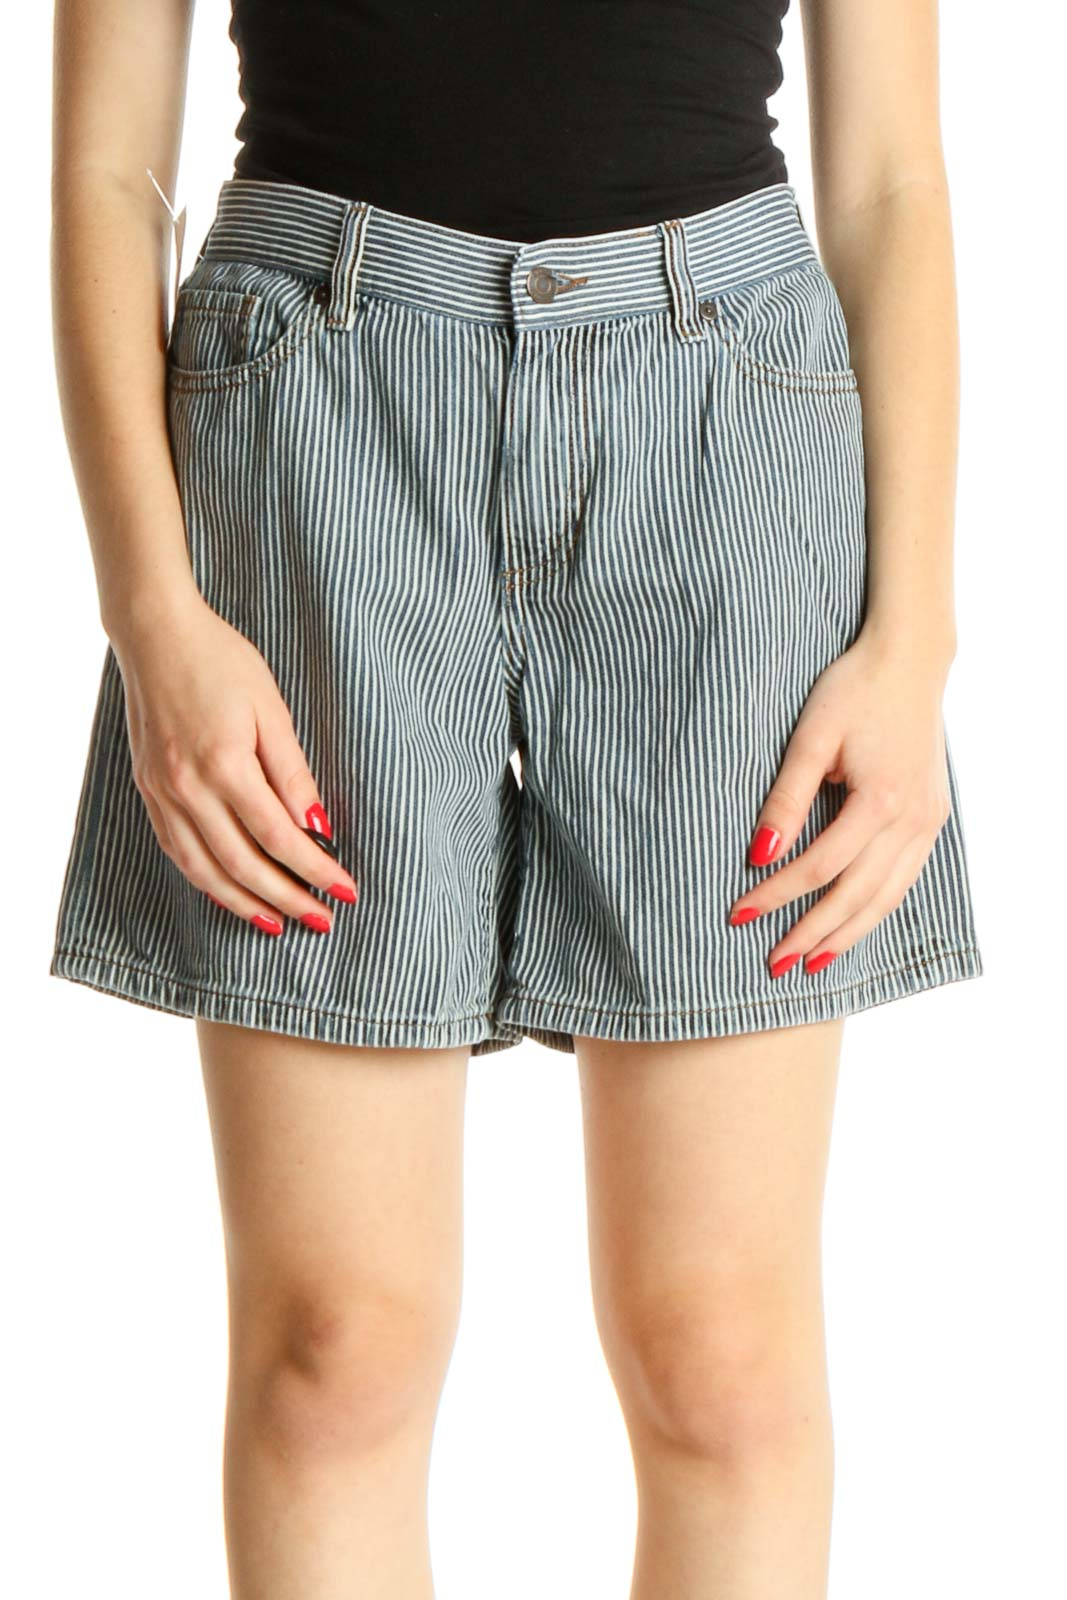 Gray Striped Chic Shorts Front